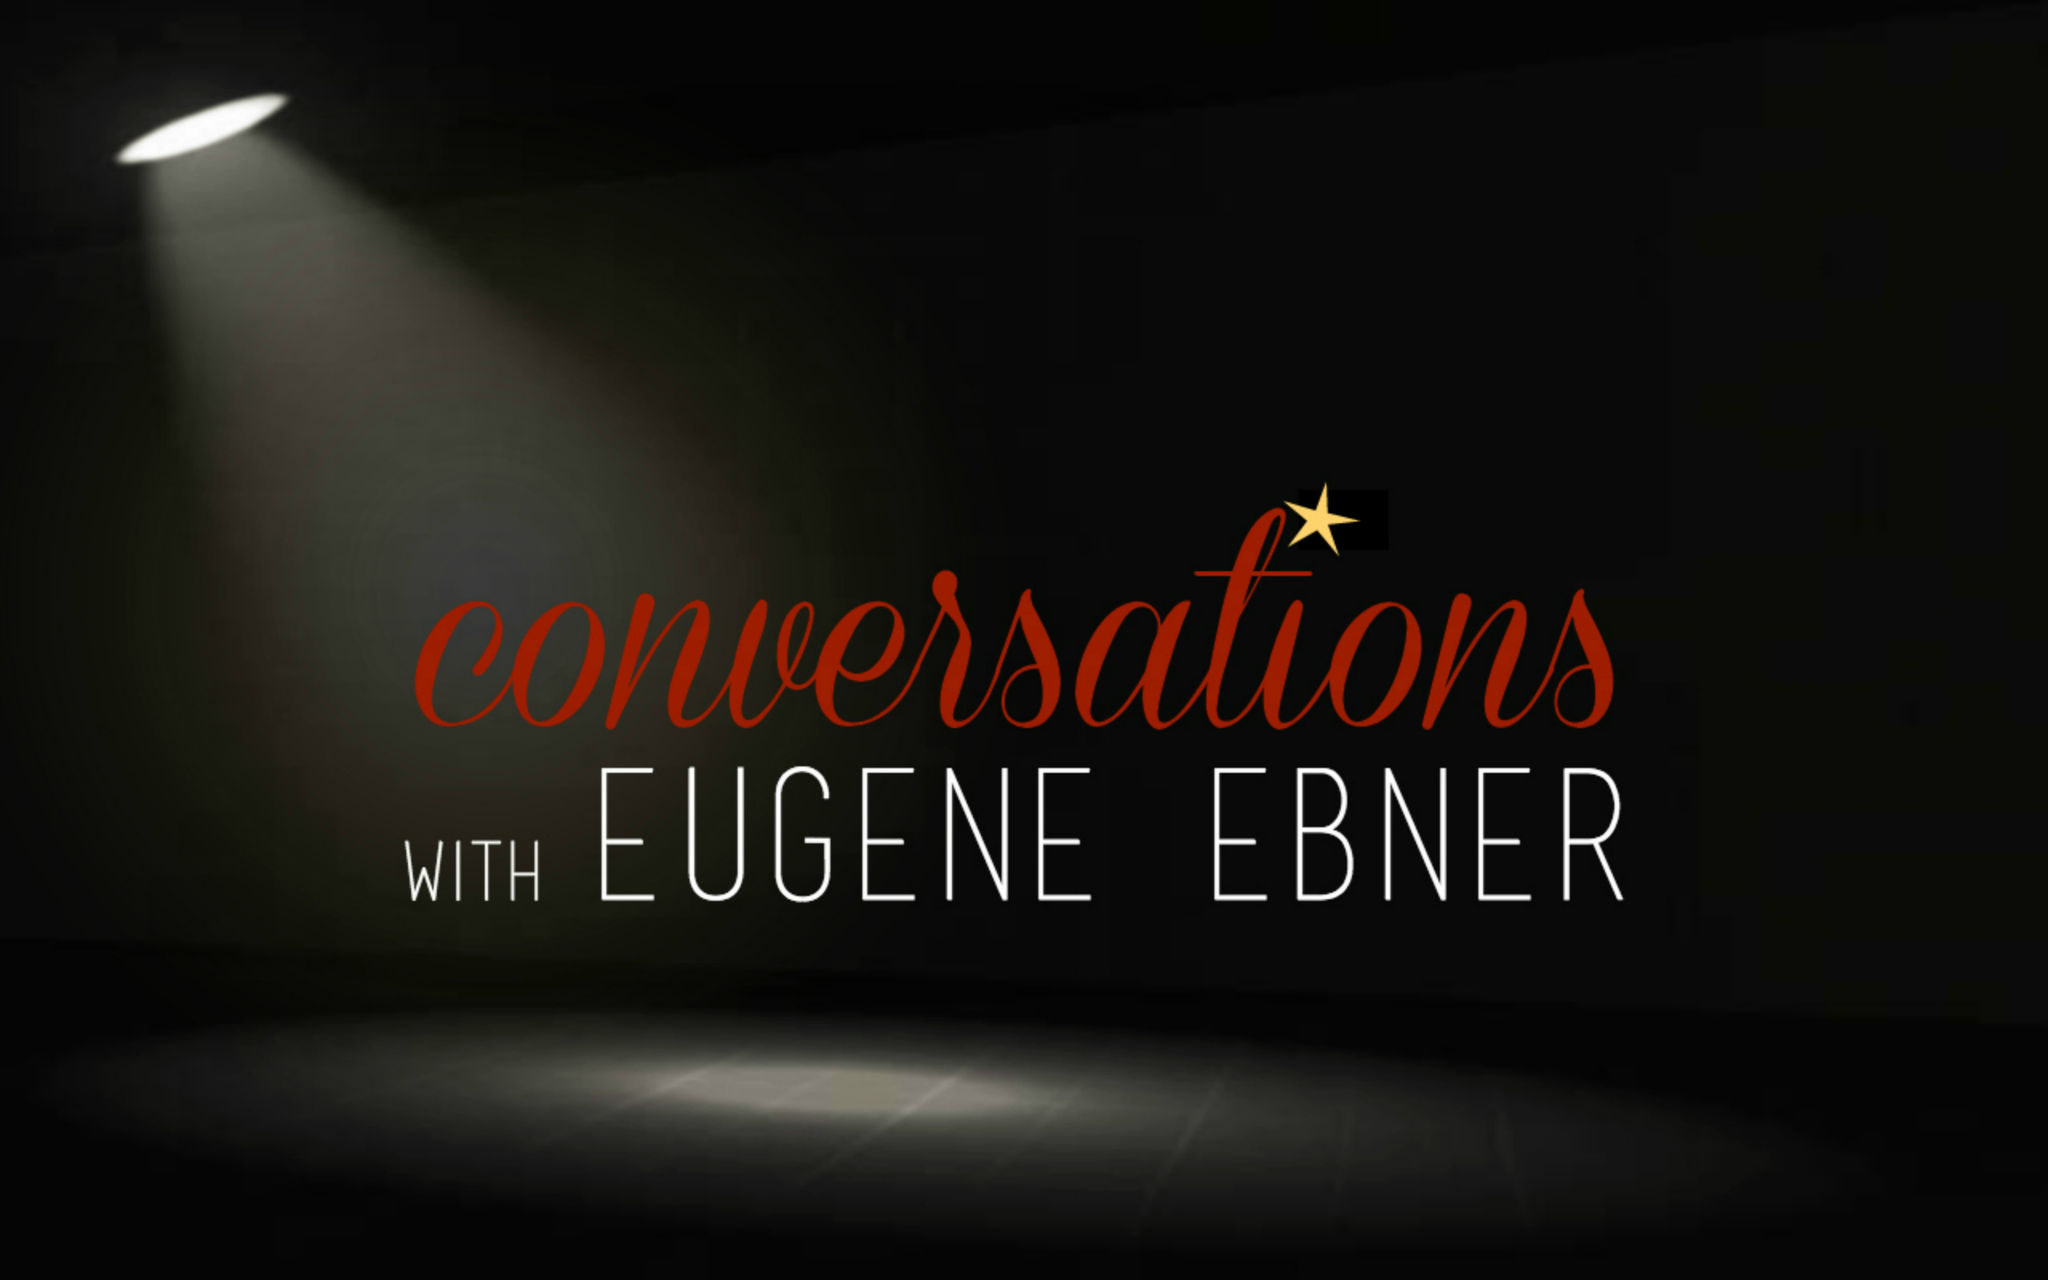 Conversations with Eugene Ebner web show